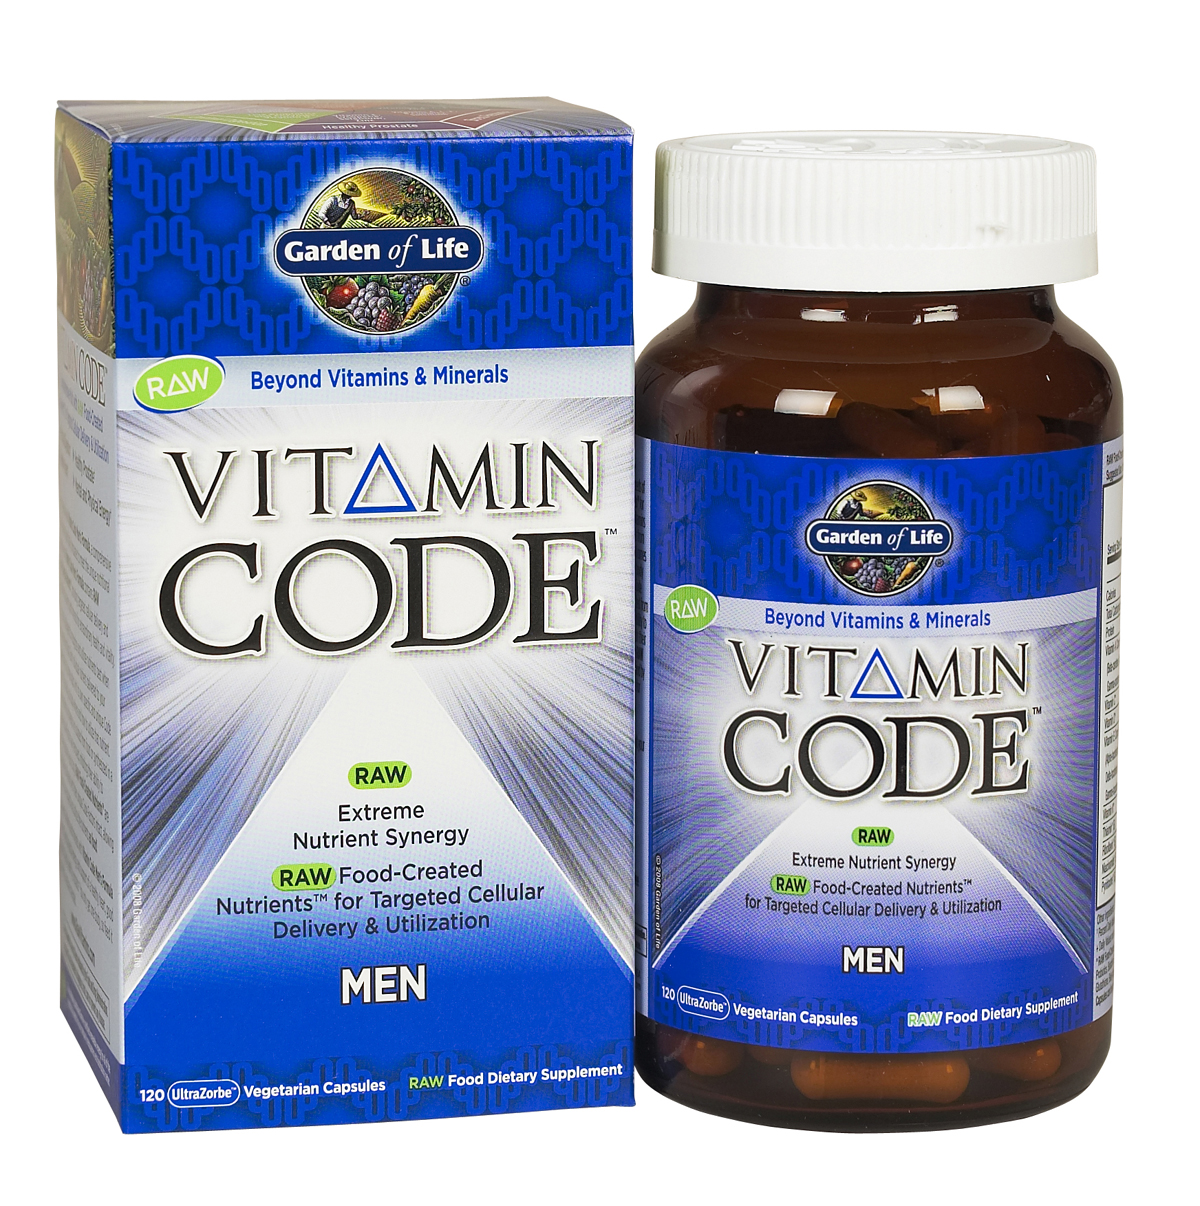 Garden of Life Vitamin Code Mens Multivitamin Green Daddy